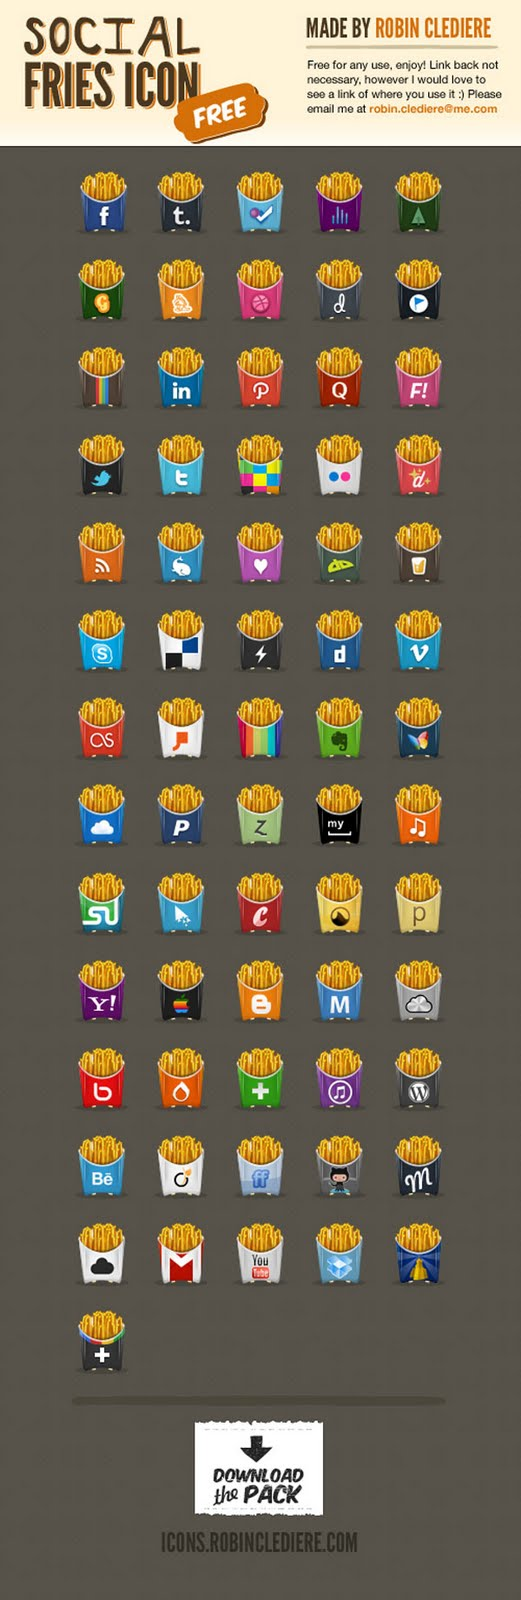 Social Fries Icons Set